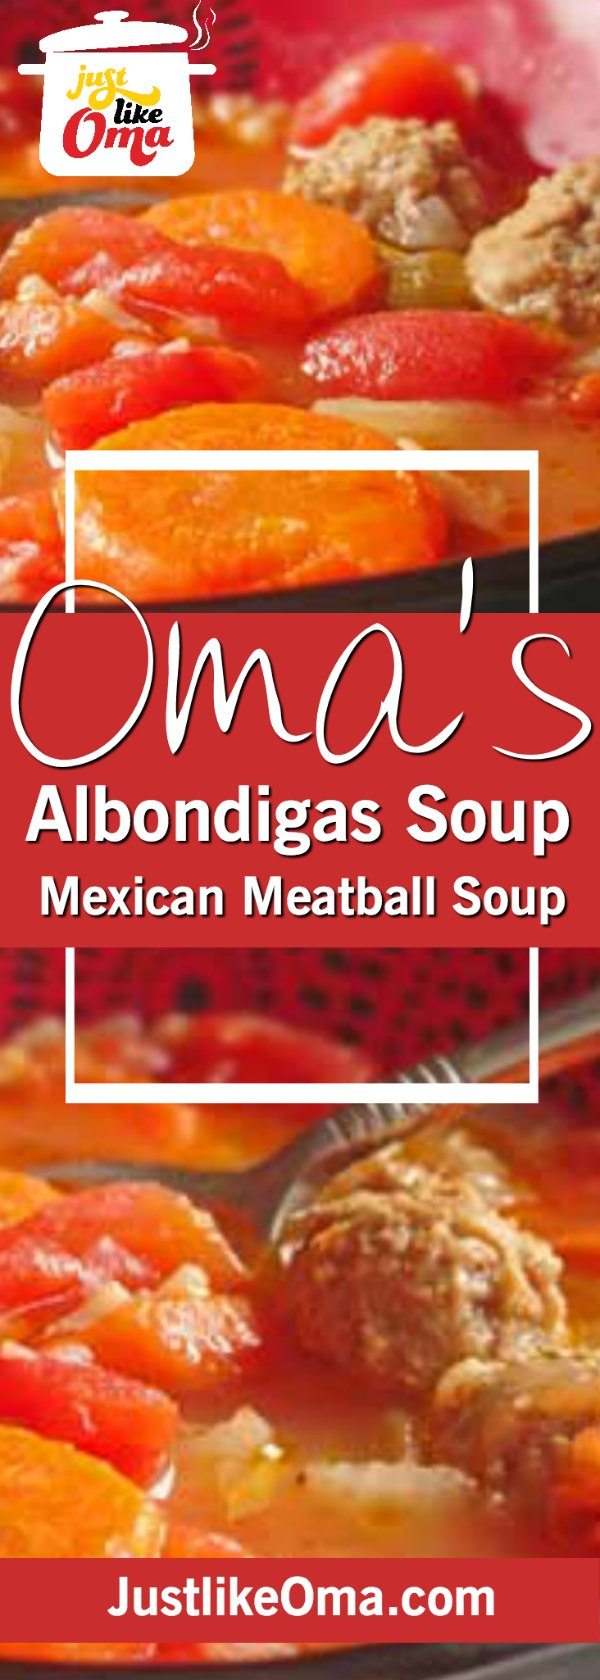 ❤️Albondigas Soup ... traditional Mexican Meatball and Rice soup made just like Oma! https://www.quick-german-recipes.com/albondigas-soup.html #albondigassoup #mexicansoup #justlikeoma